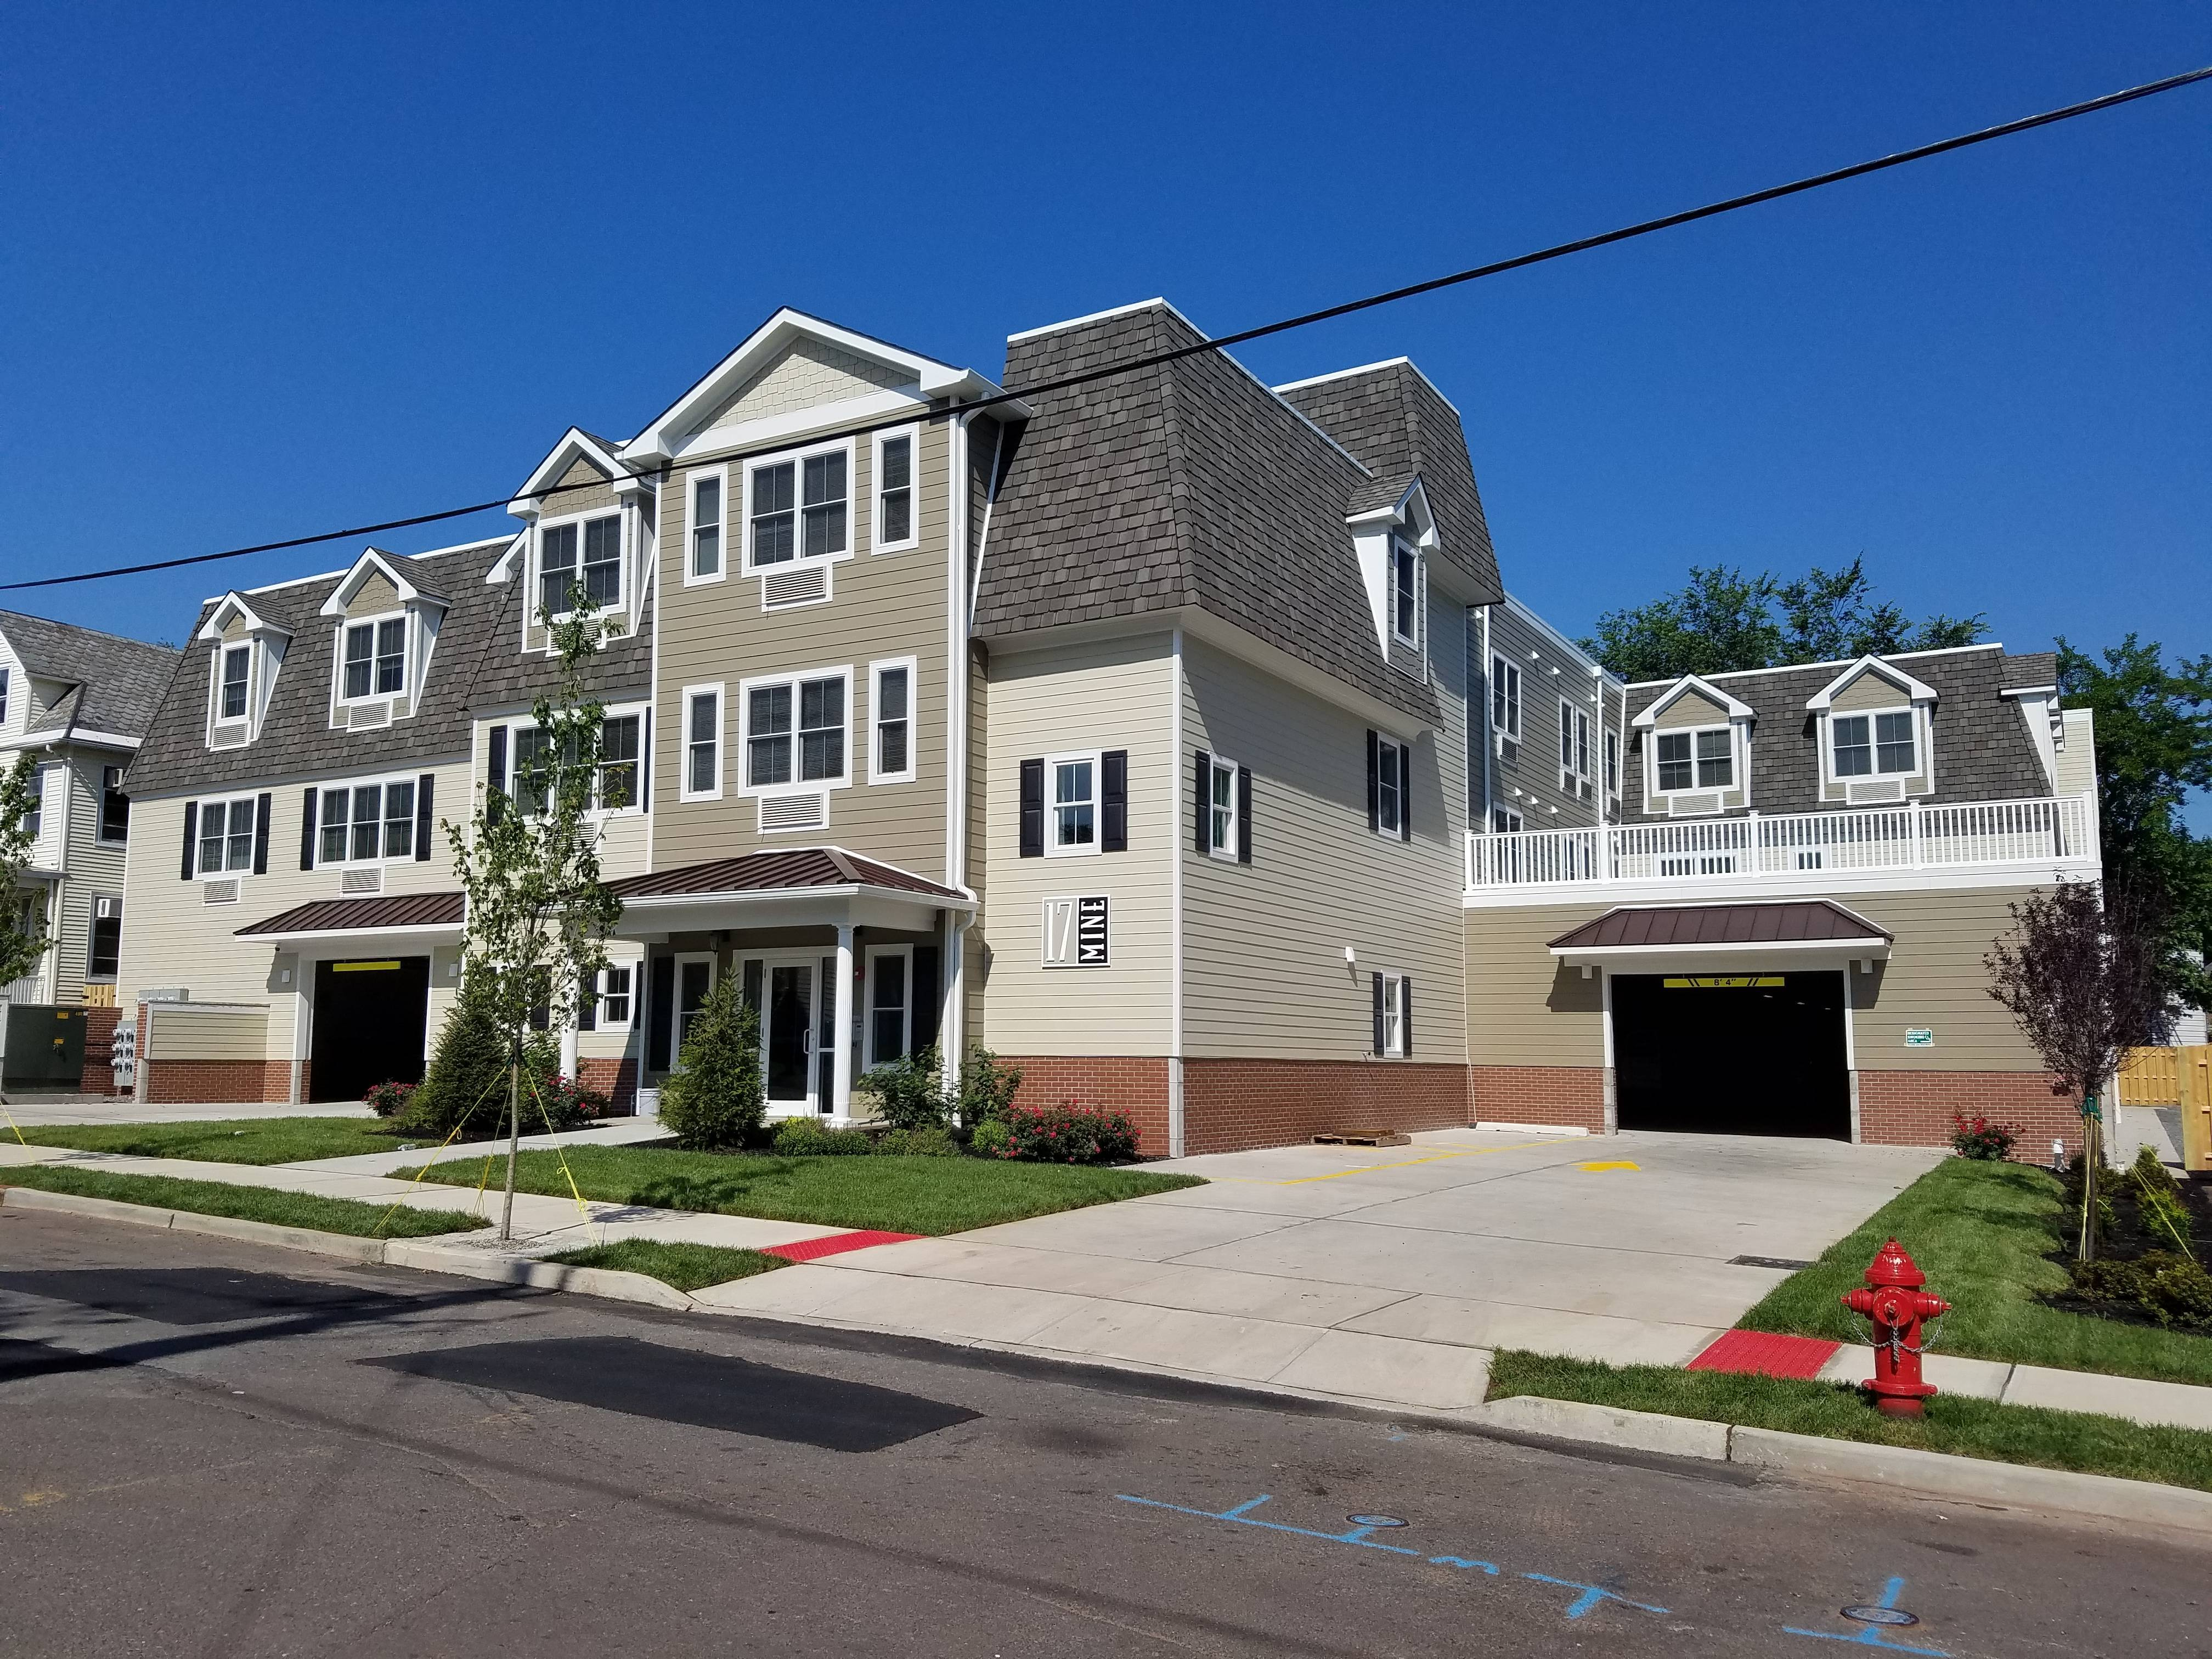 modern apartments now serve rutgers and seminary students on new